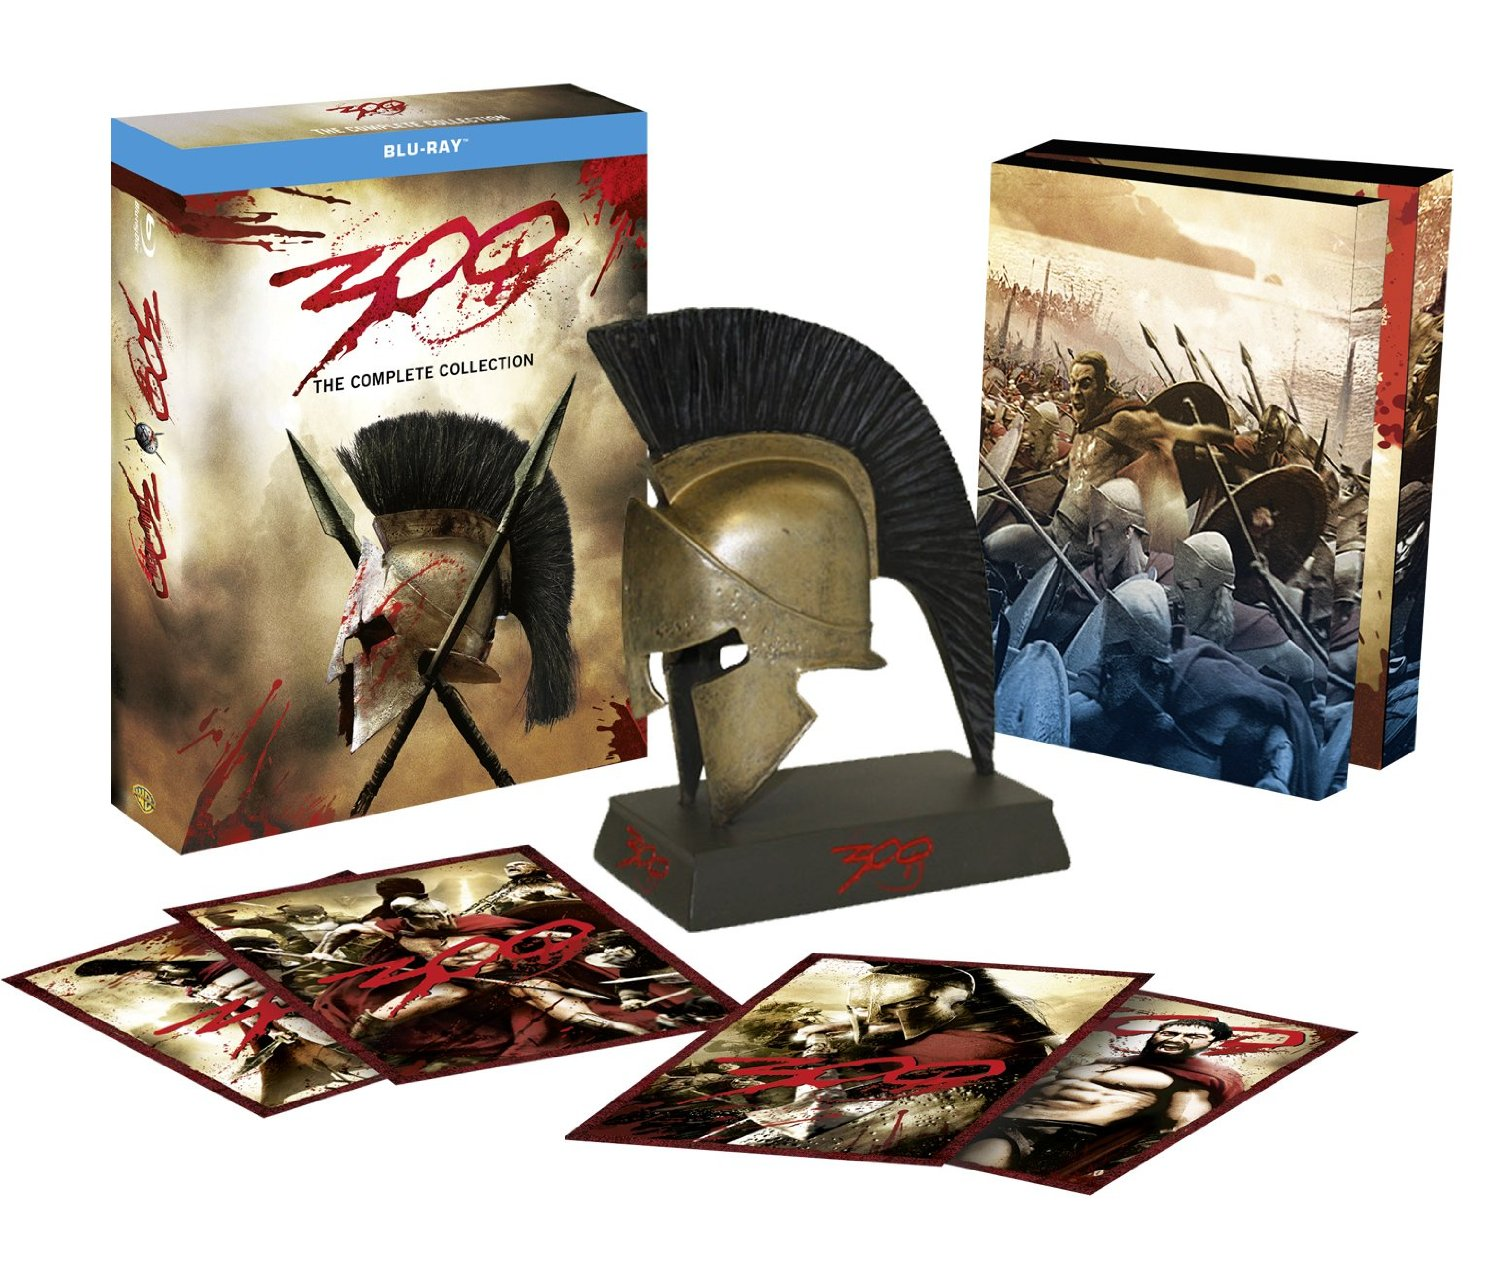 300 the complete collection 3